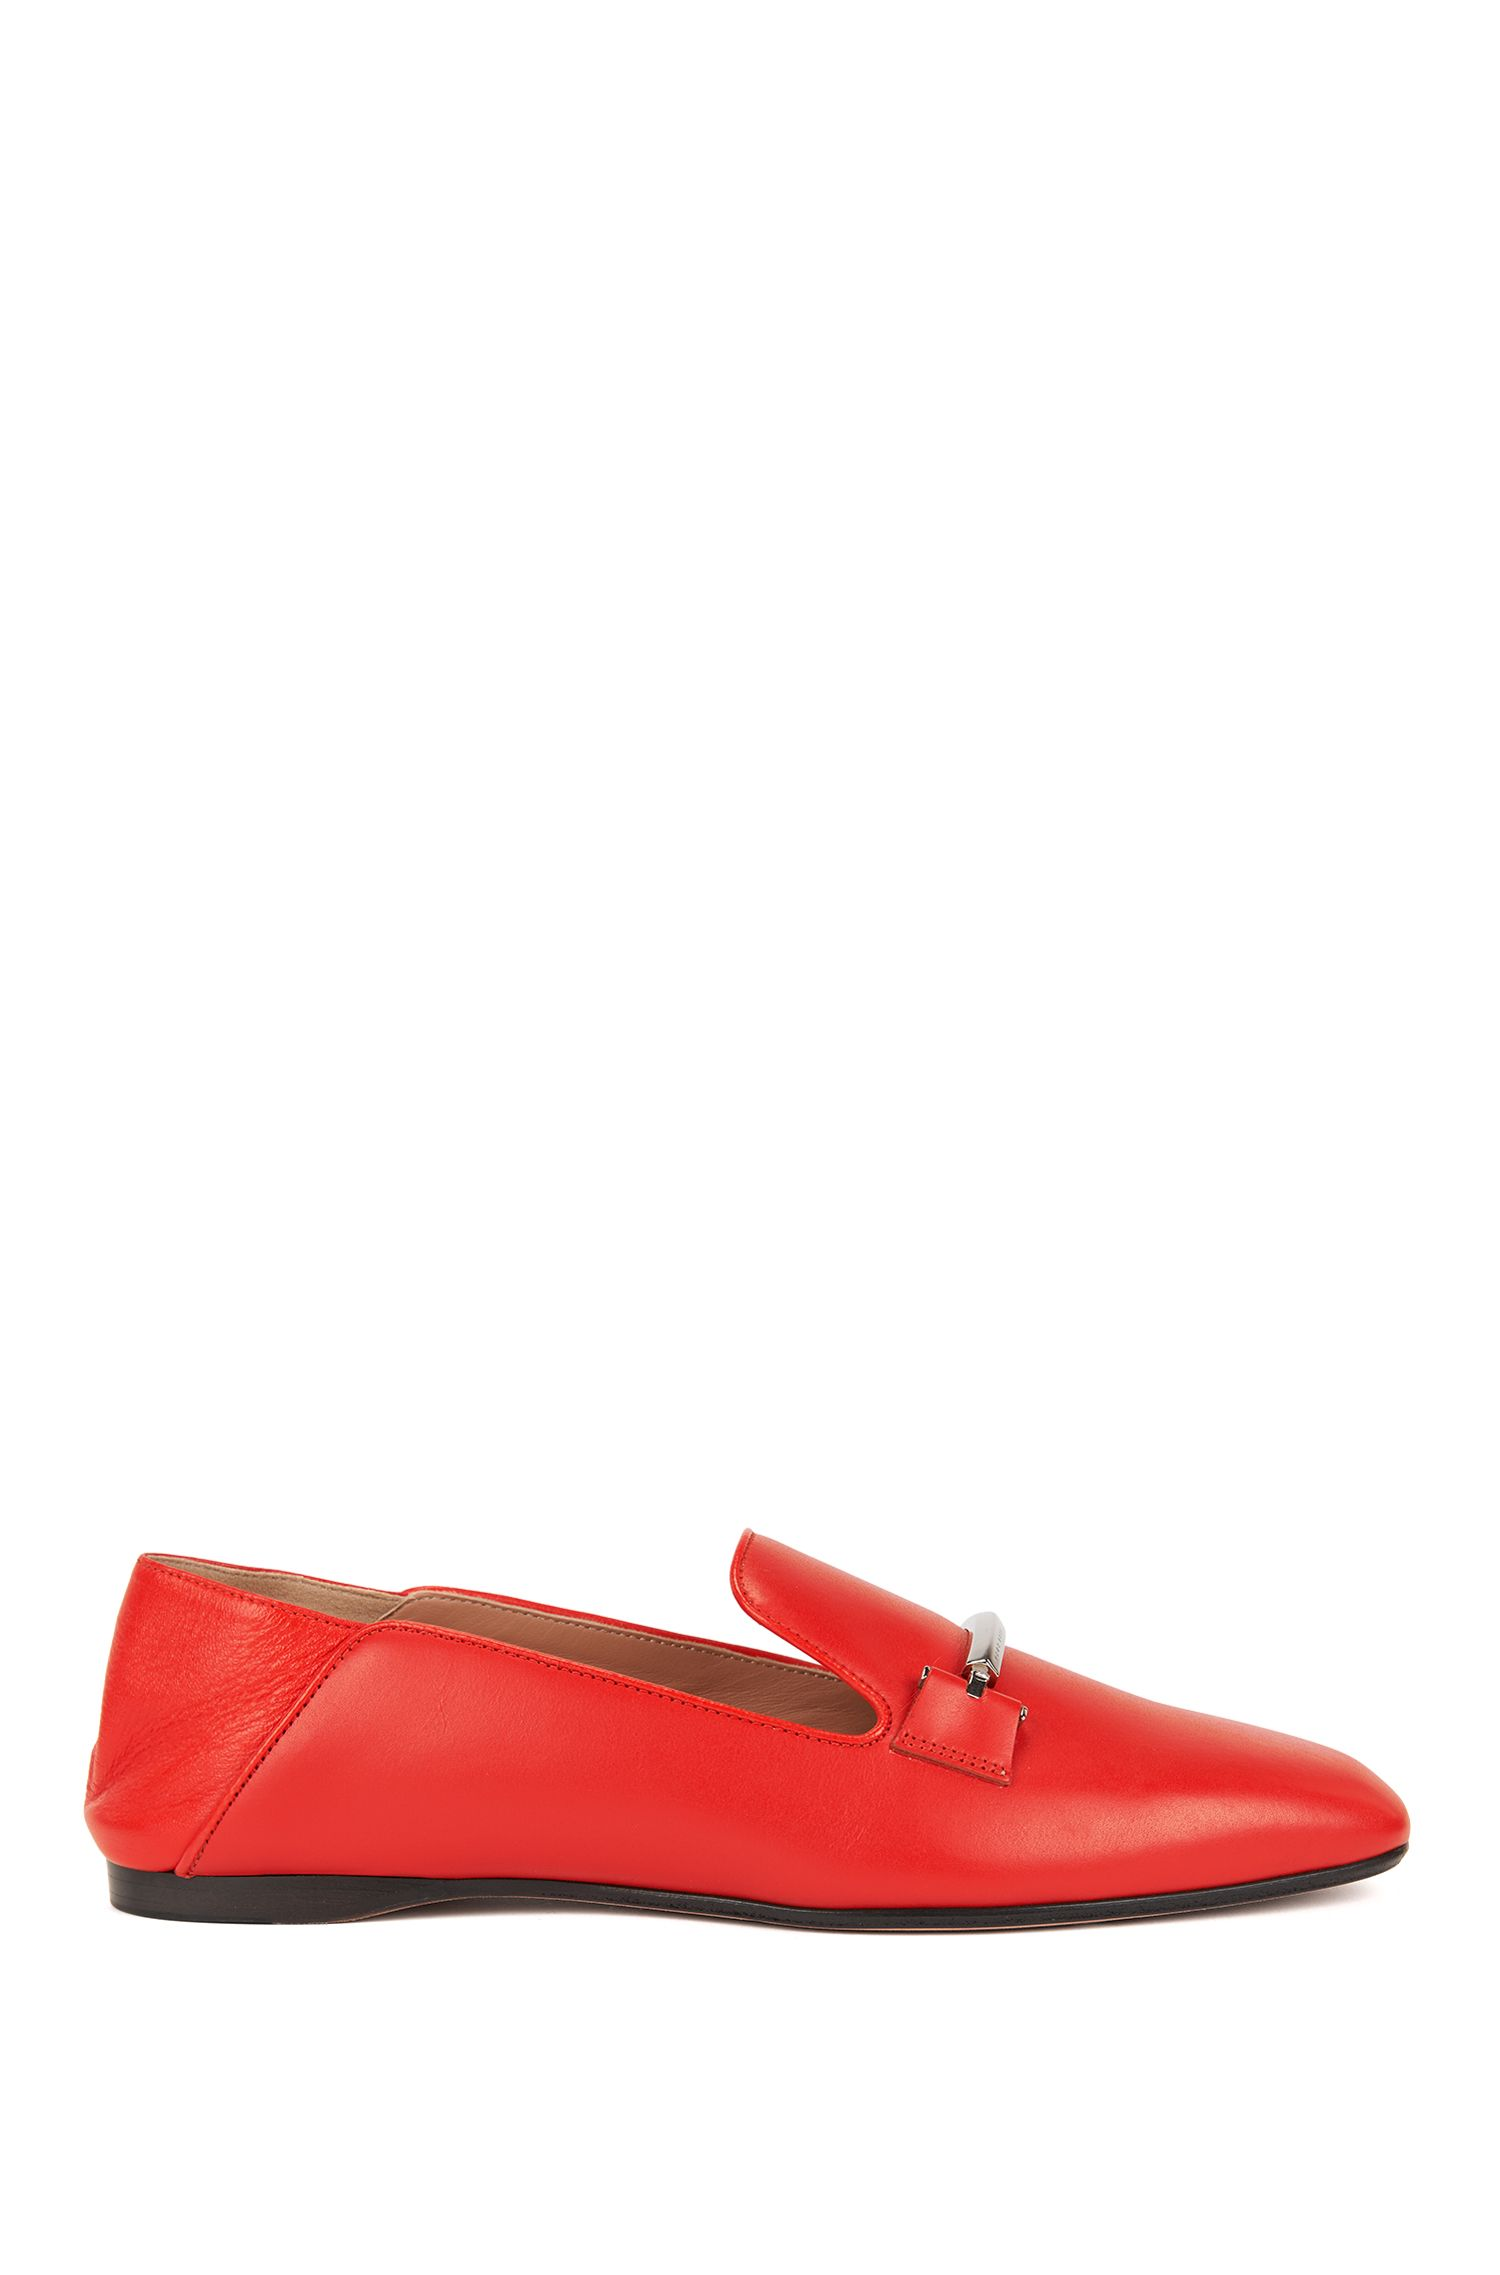 Leather loafers with fold-down heel counters